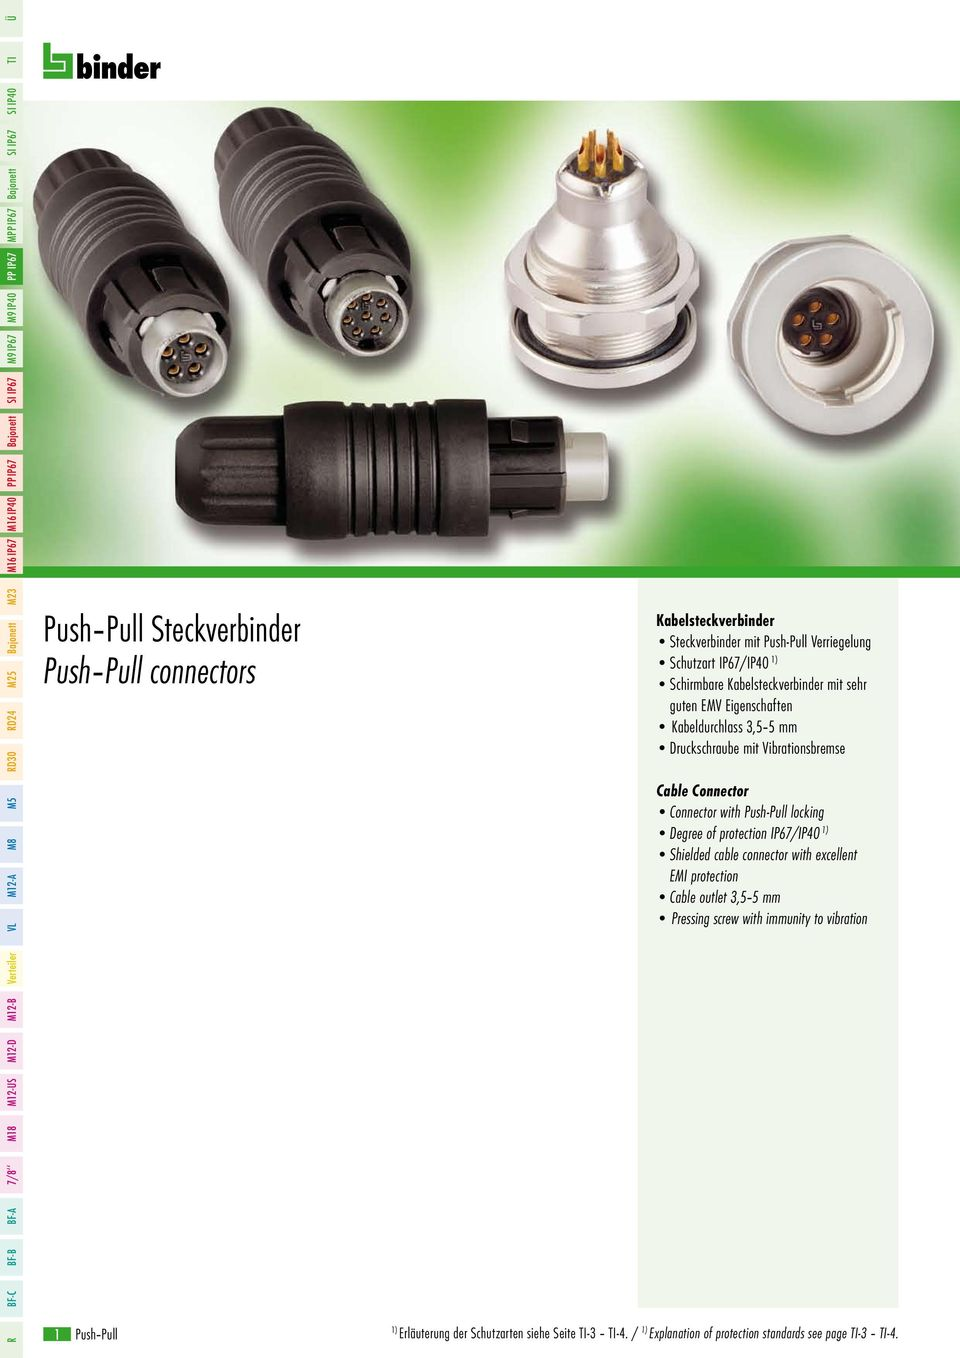 Kabeldurchlass, mm Druckschraube mit Vibrationsbremse Cable Connector Connector with Push-Pull locking Degree of protection IP/IP0 ) Shielded cable connector with excellent